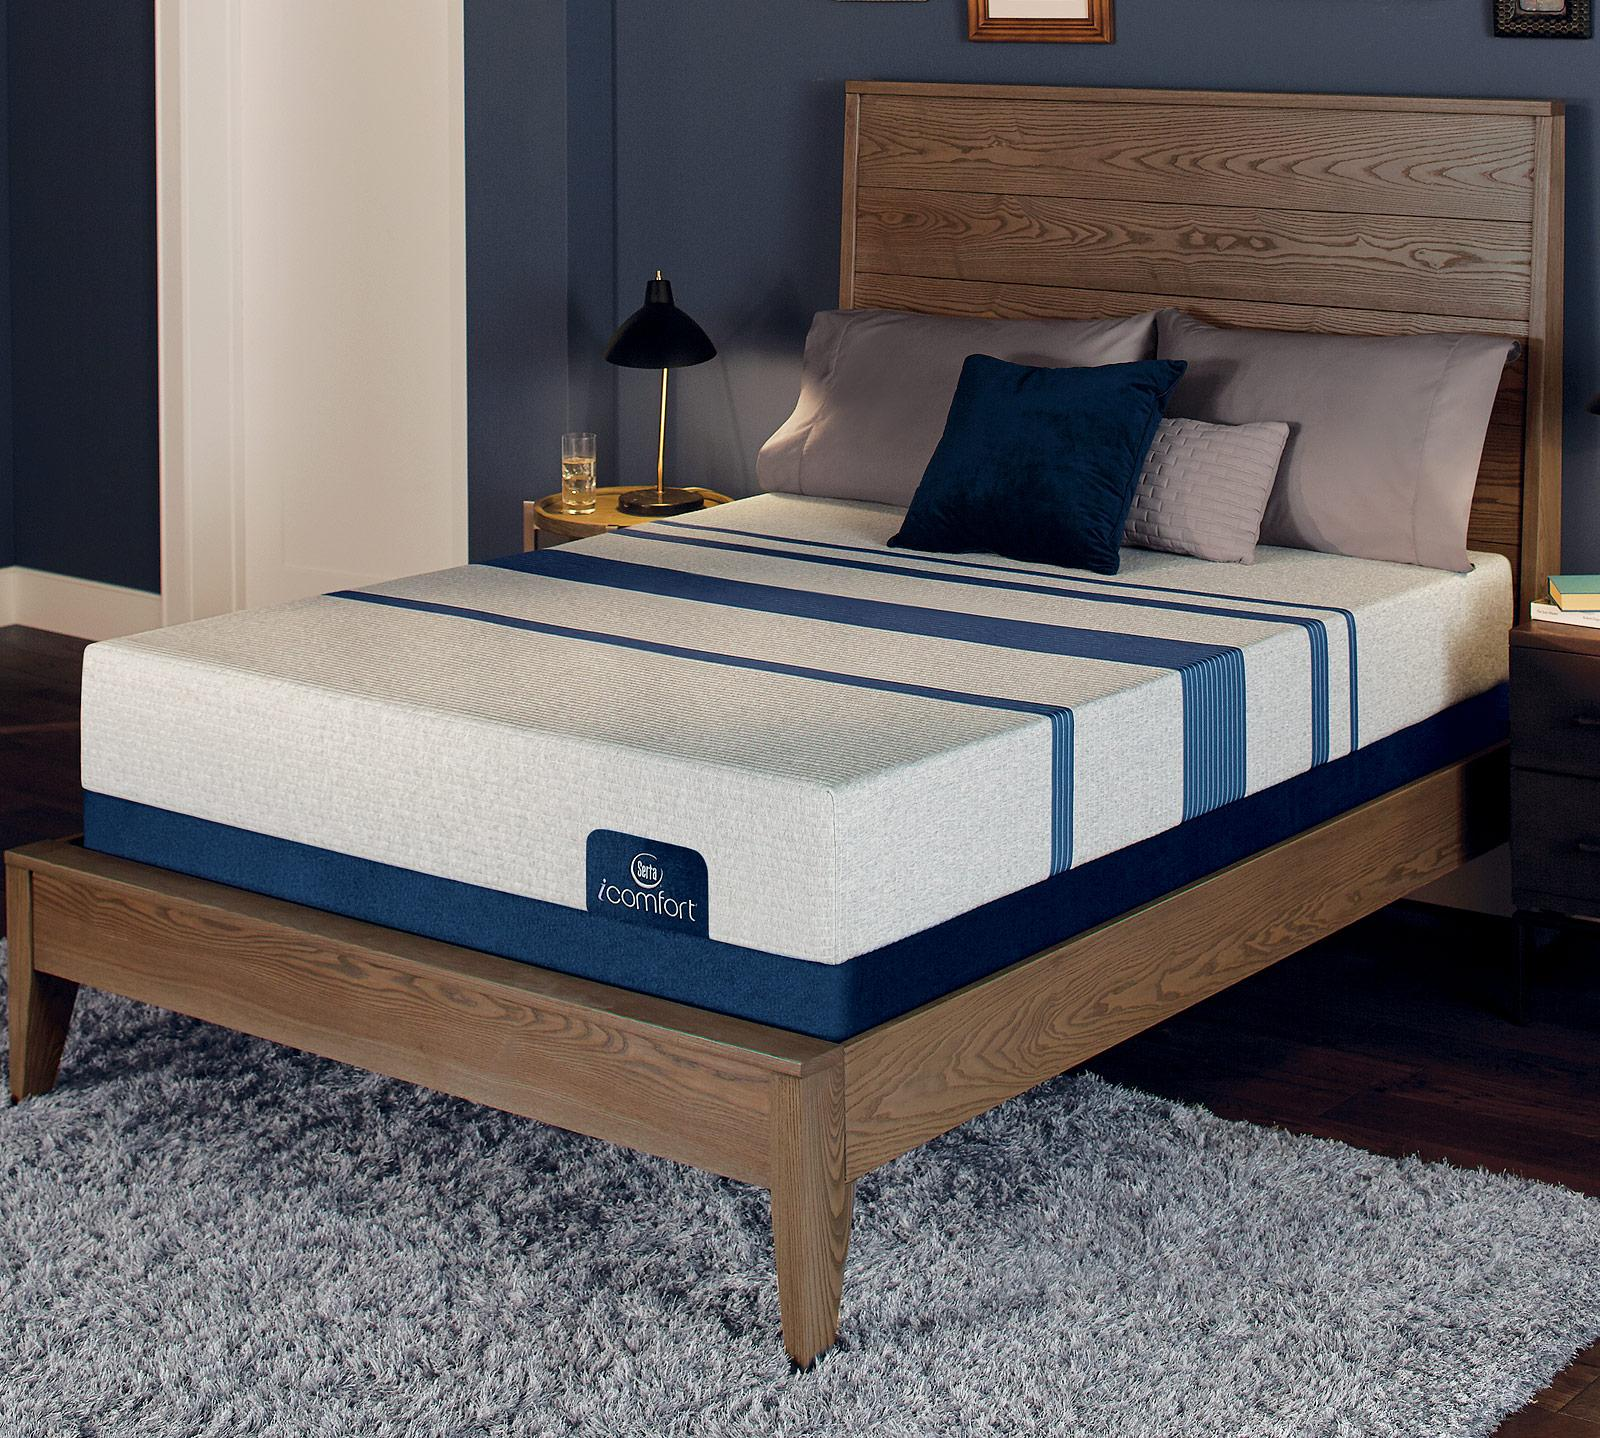 iComfort Blue Touch 100 9.75 Inch Gentle Firm Memory Foam Mattress